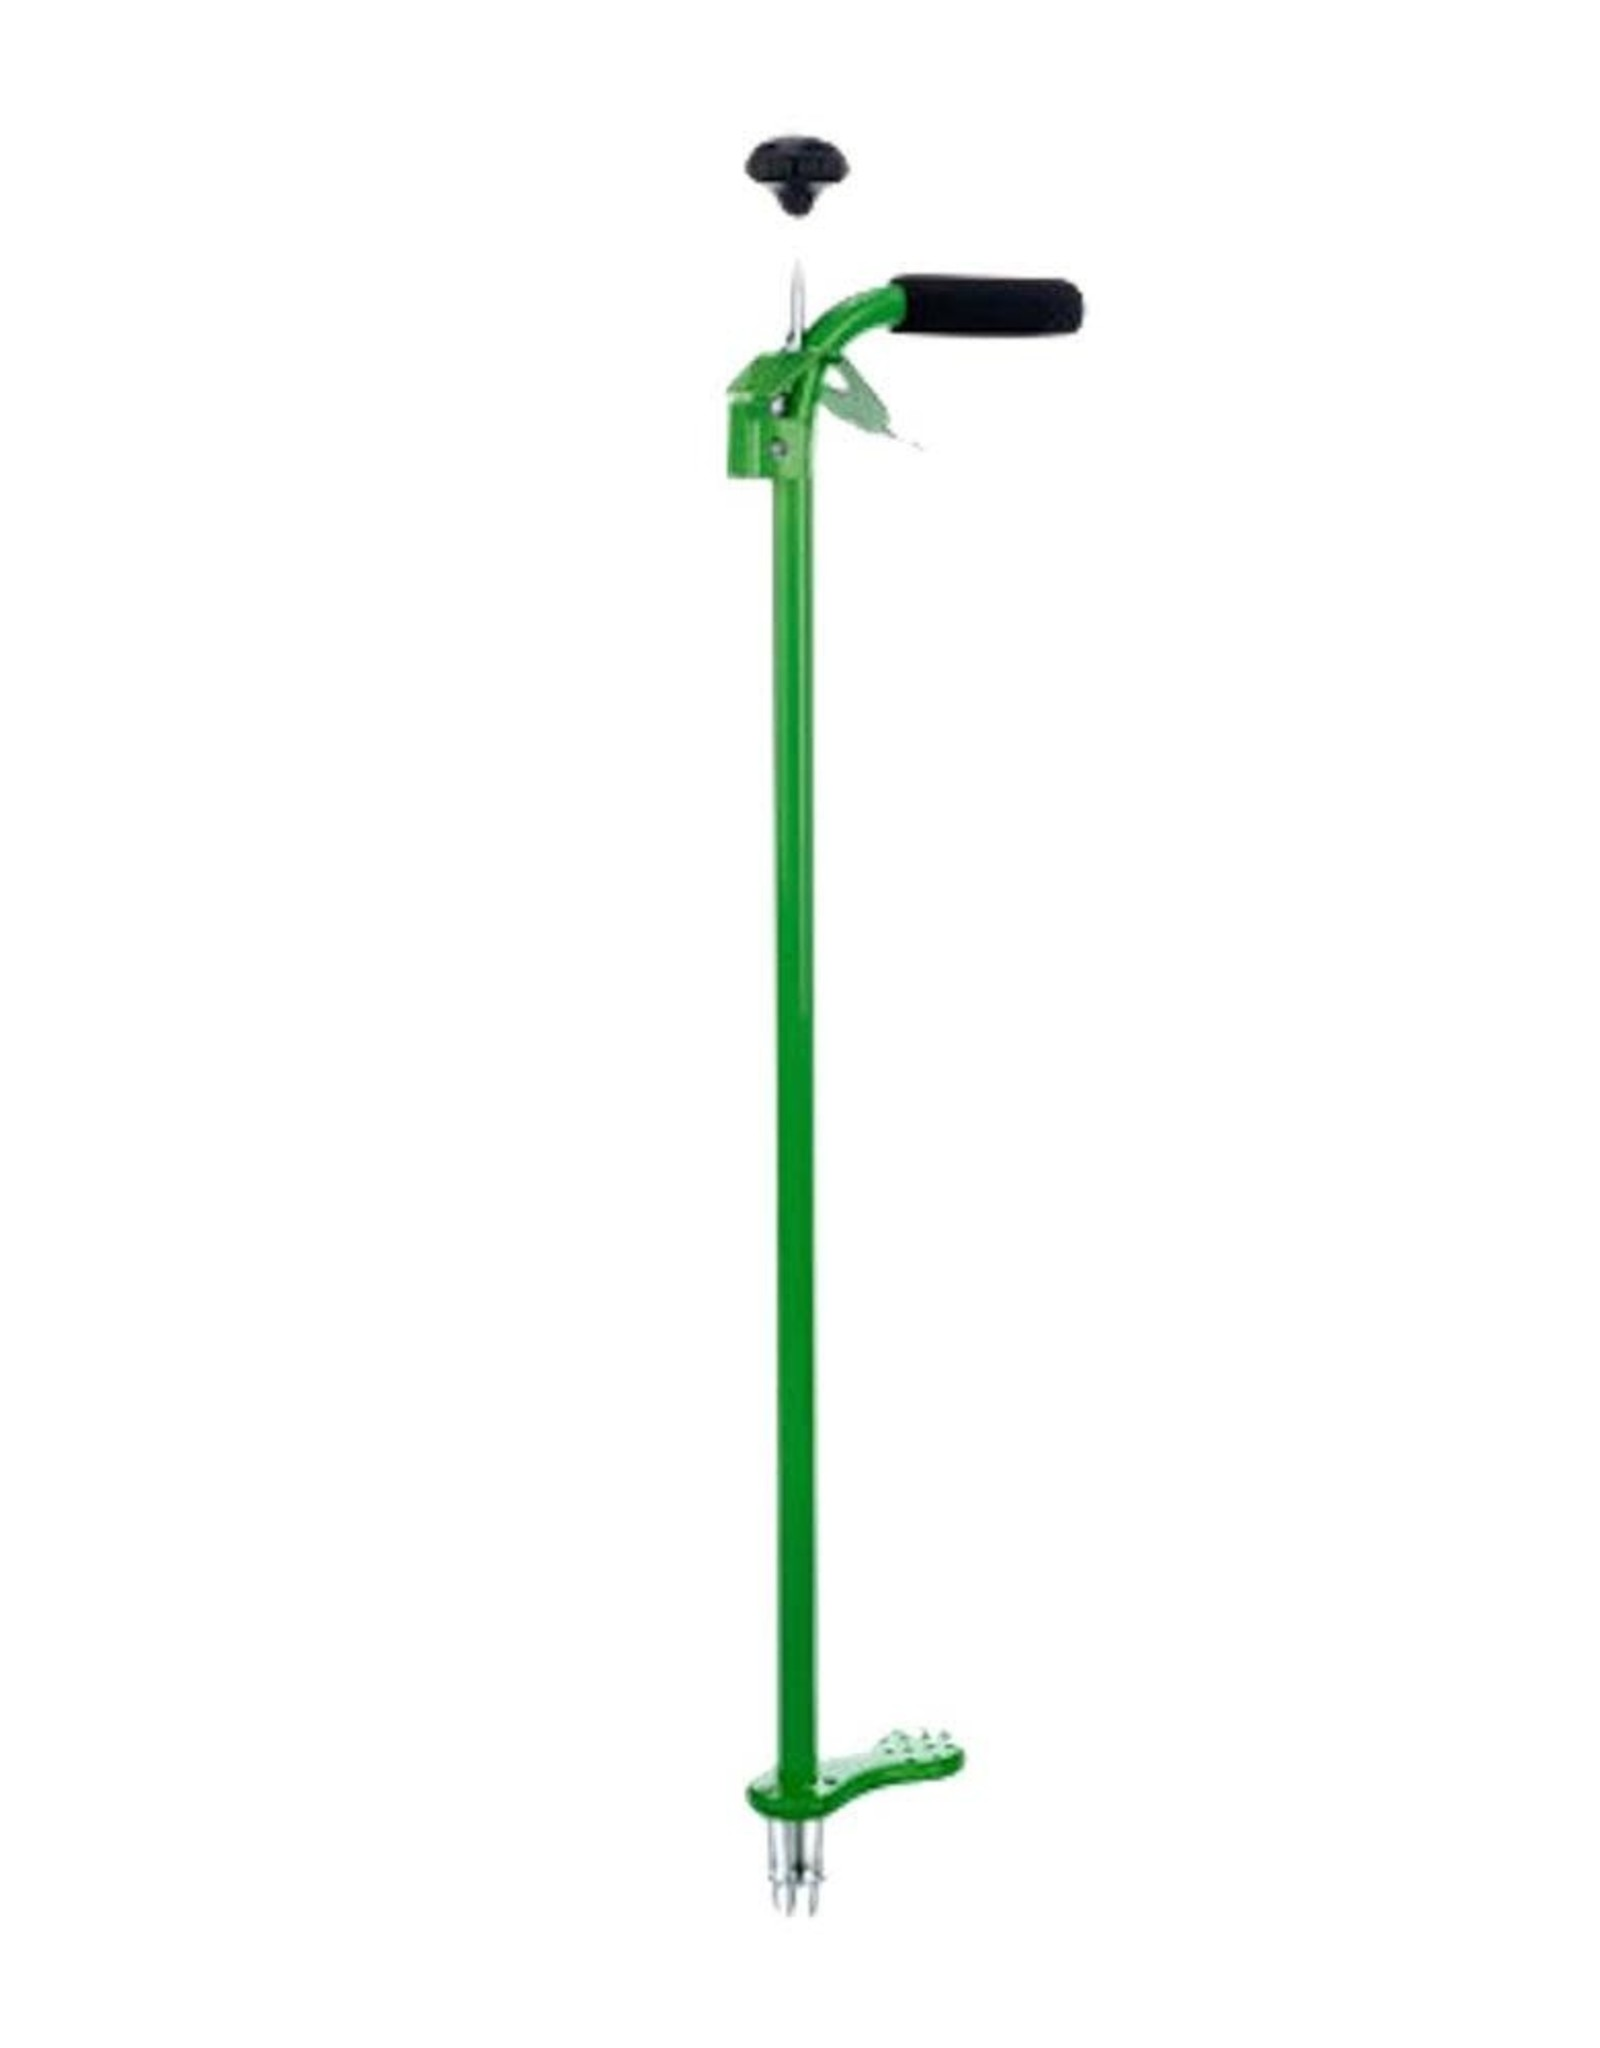 Stand-Up Weeding Tool with Spring Release